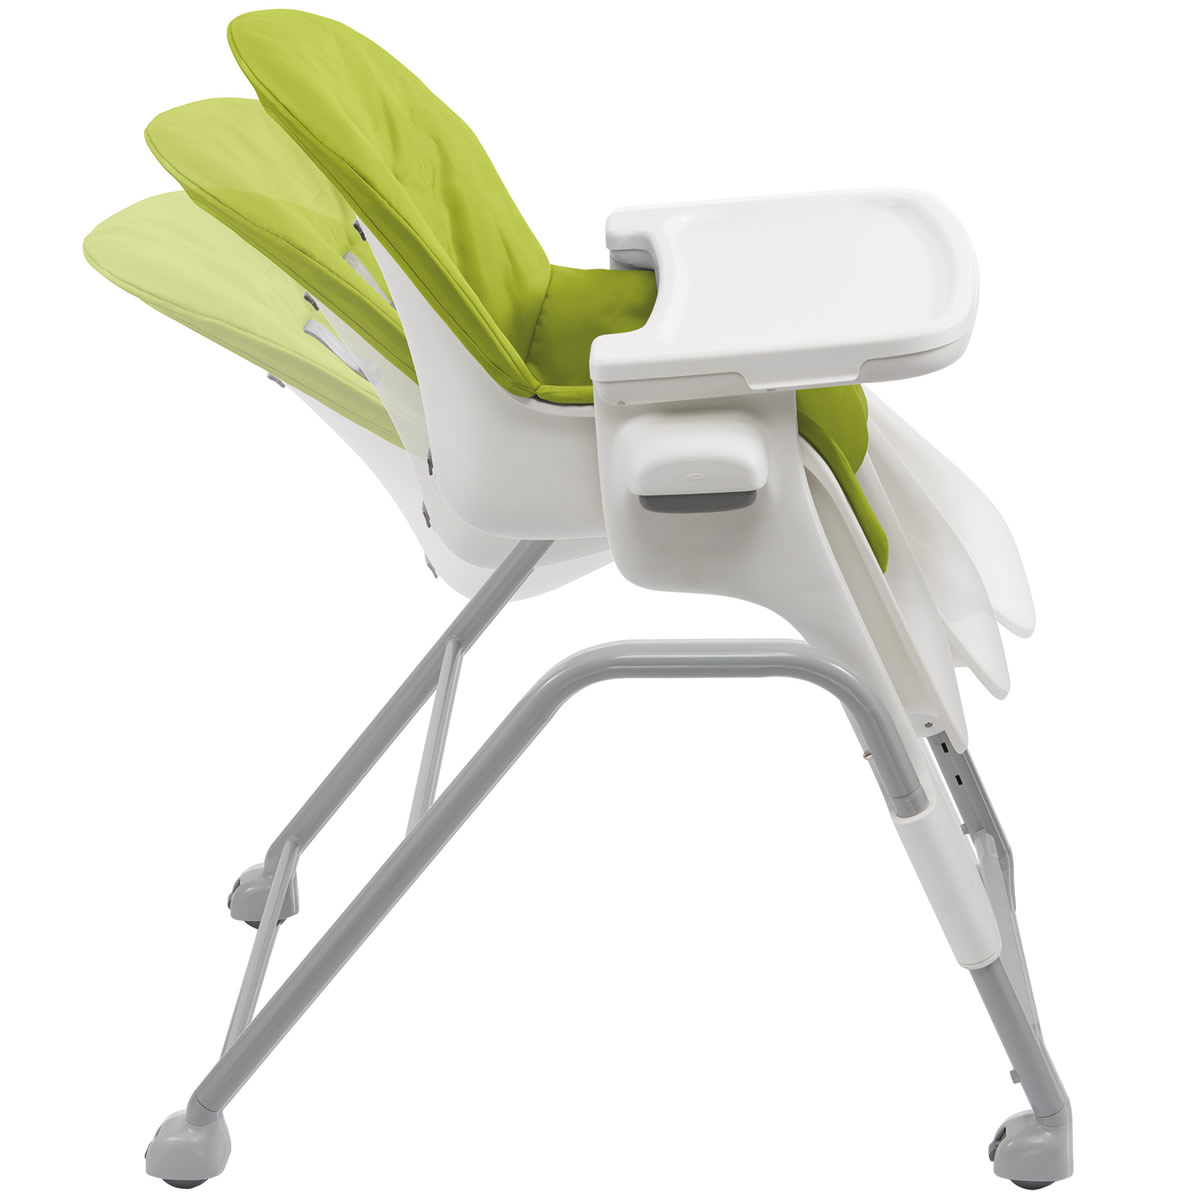 oxo tot seedling high chair malaysia the baby oft - oxo tot seedling high chair